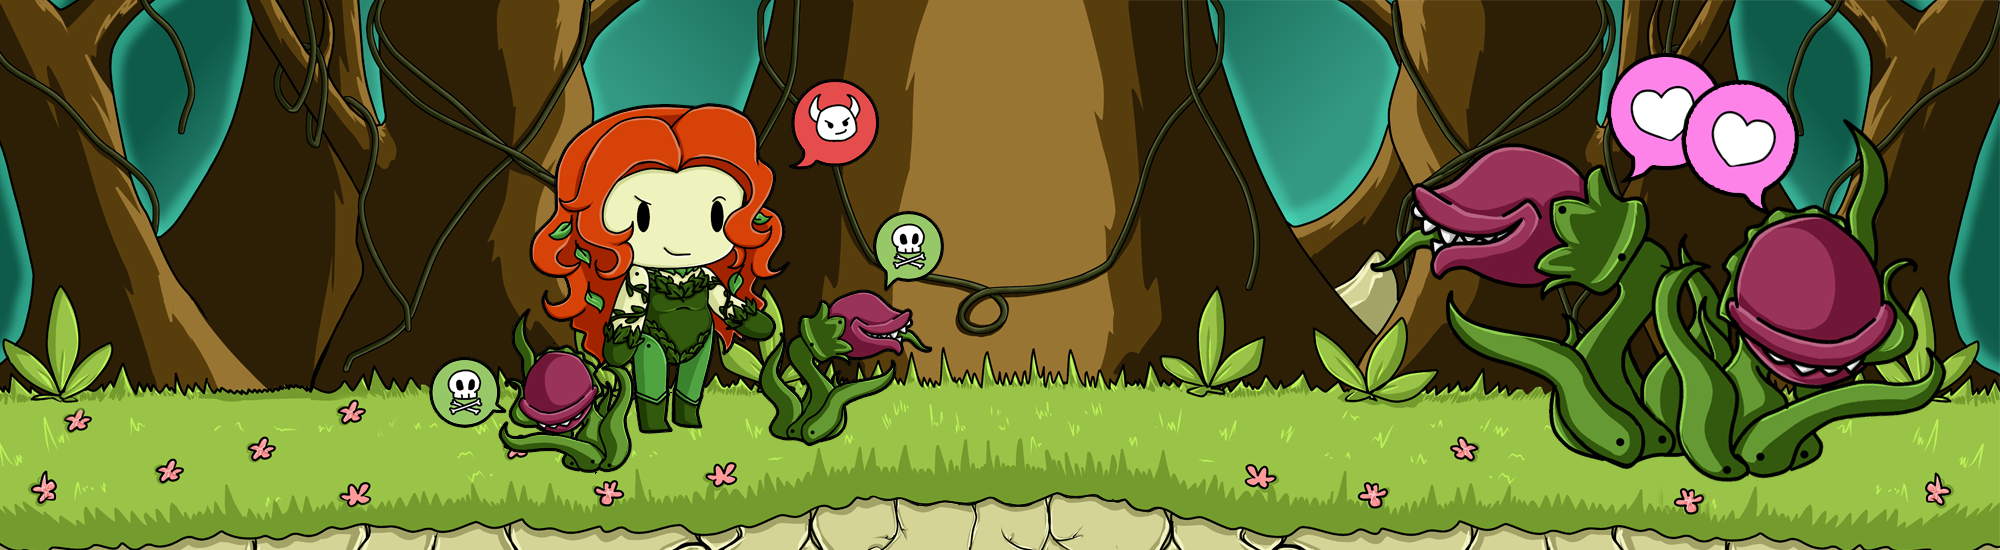 Scribblenauts Poison Ivy by Dare2DreamMedia